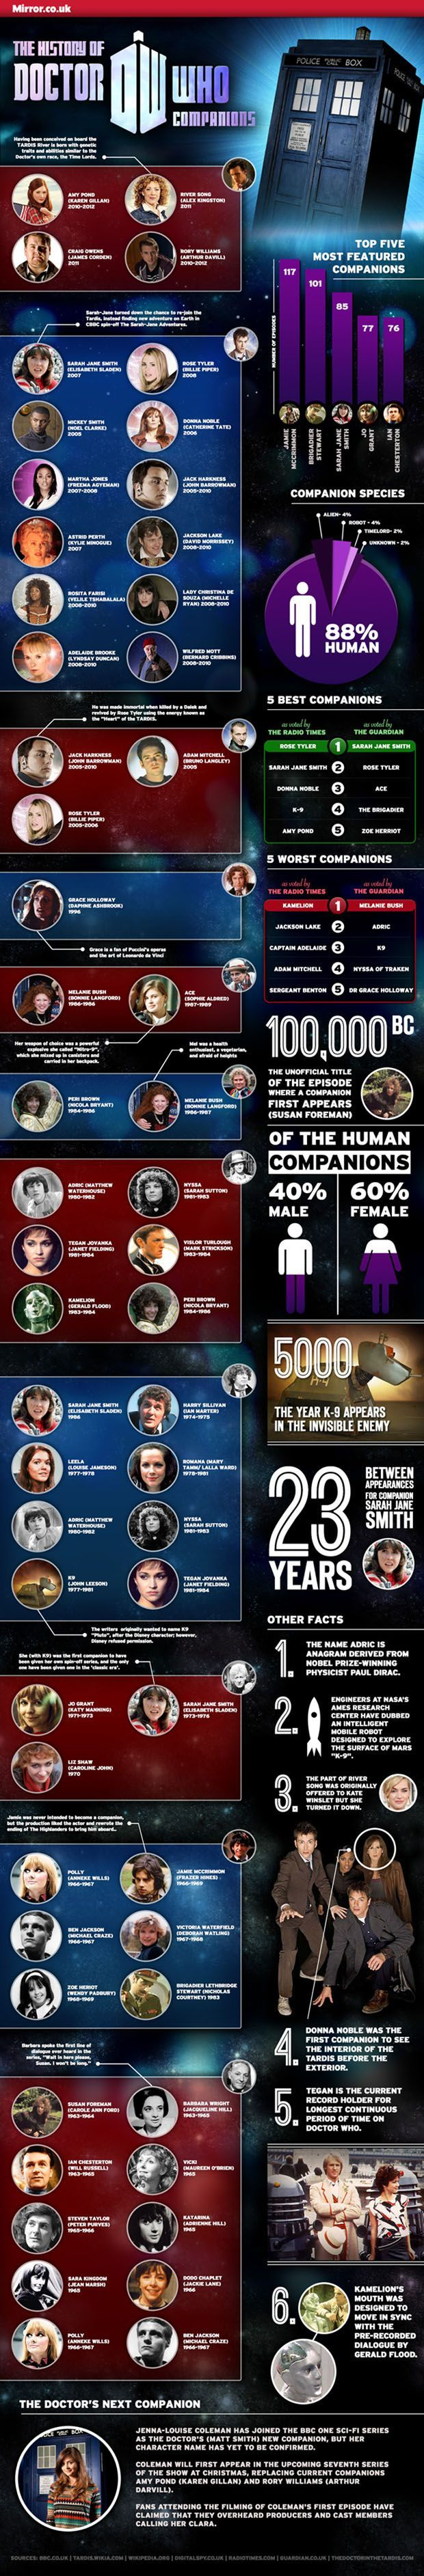 The History of Dr Who Companions... all sorts of stats and facts from the legendary BBC TV series.